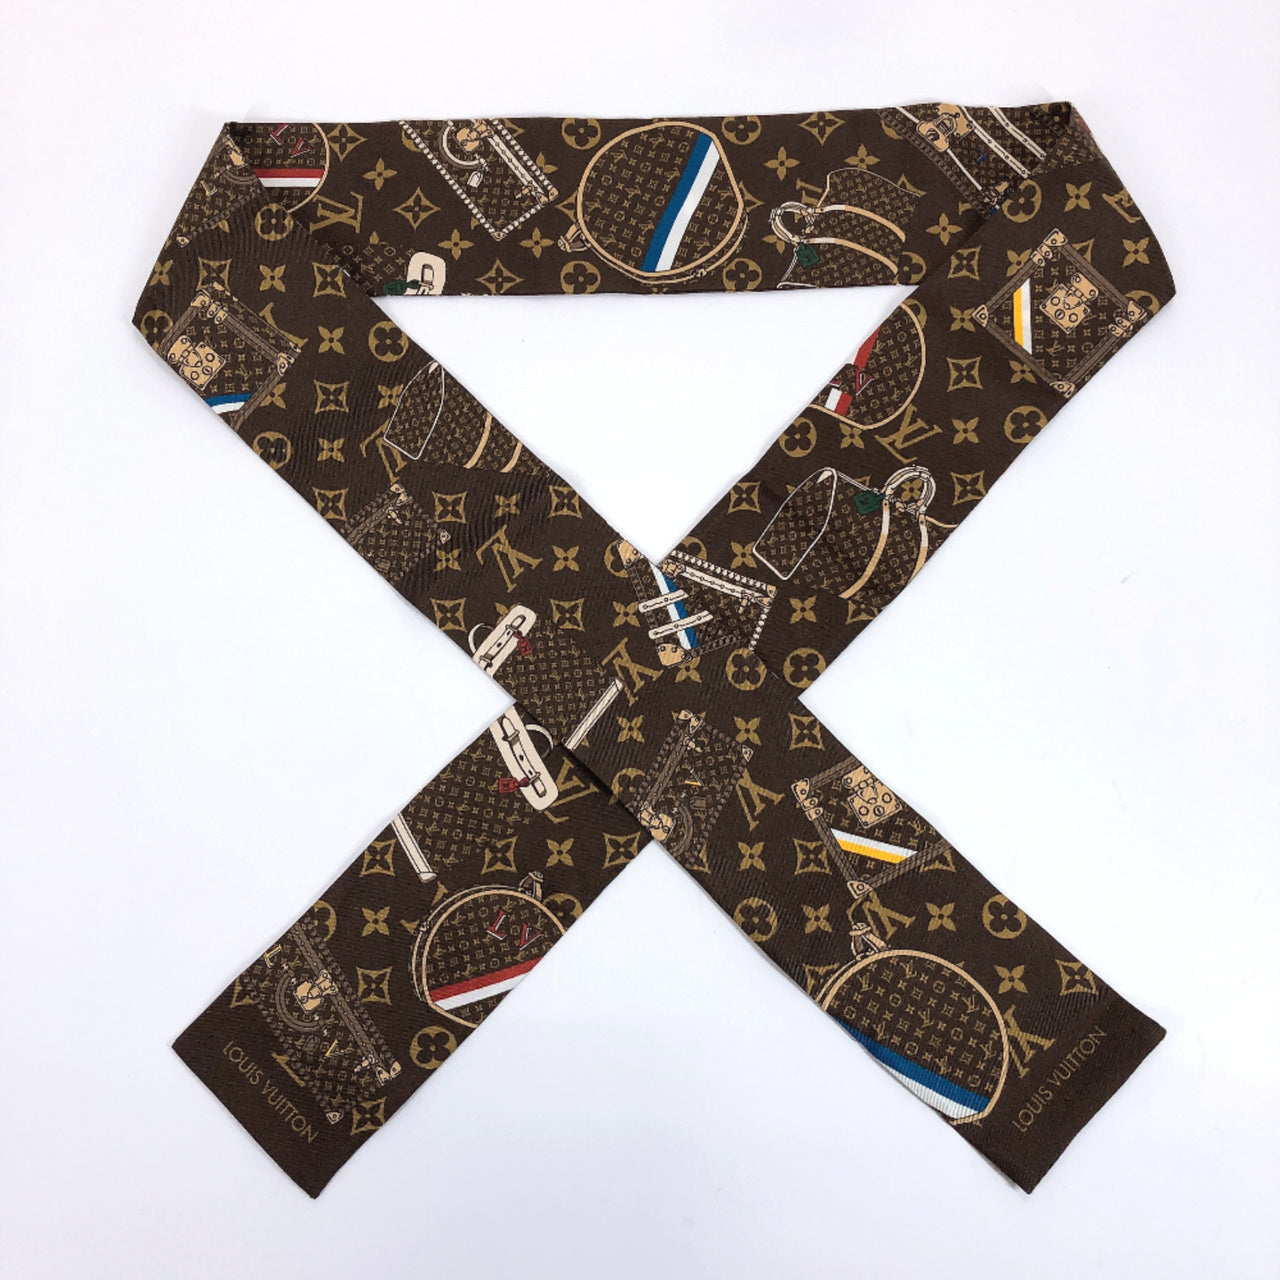 LOUIS VUITTON scarf M72395 Twilly Bandoo Monogram pattern silk Brown Women Used